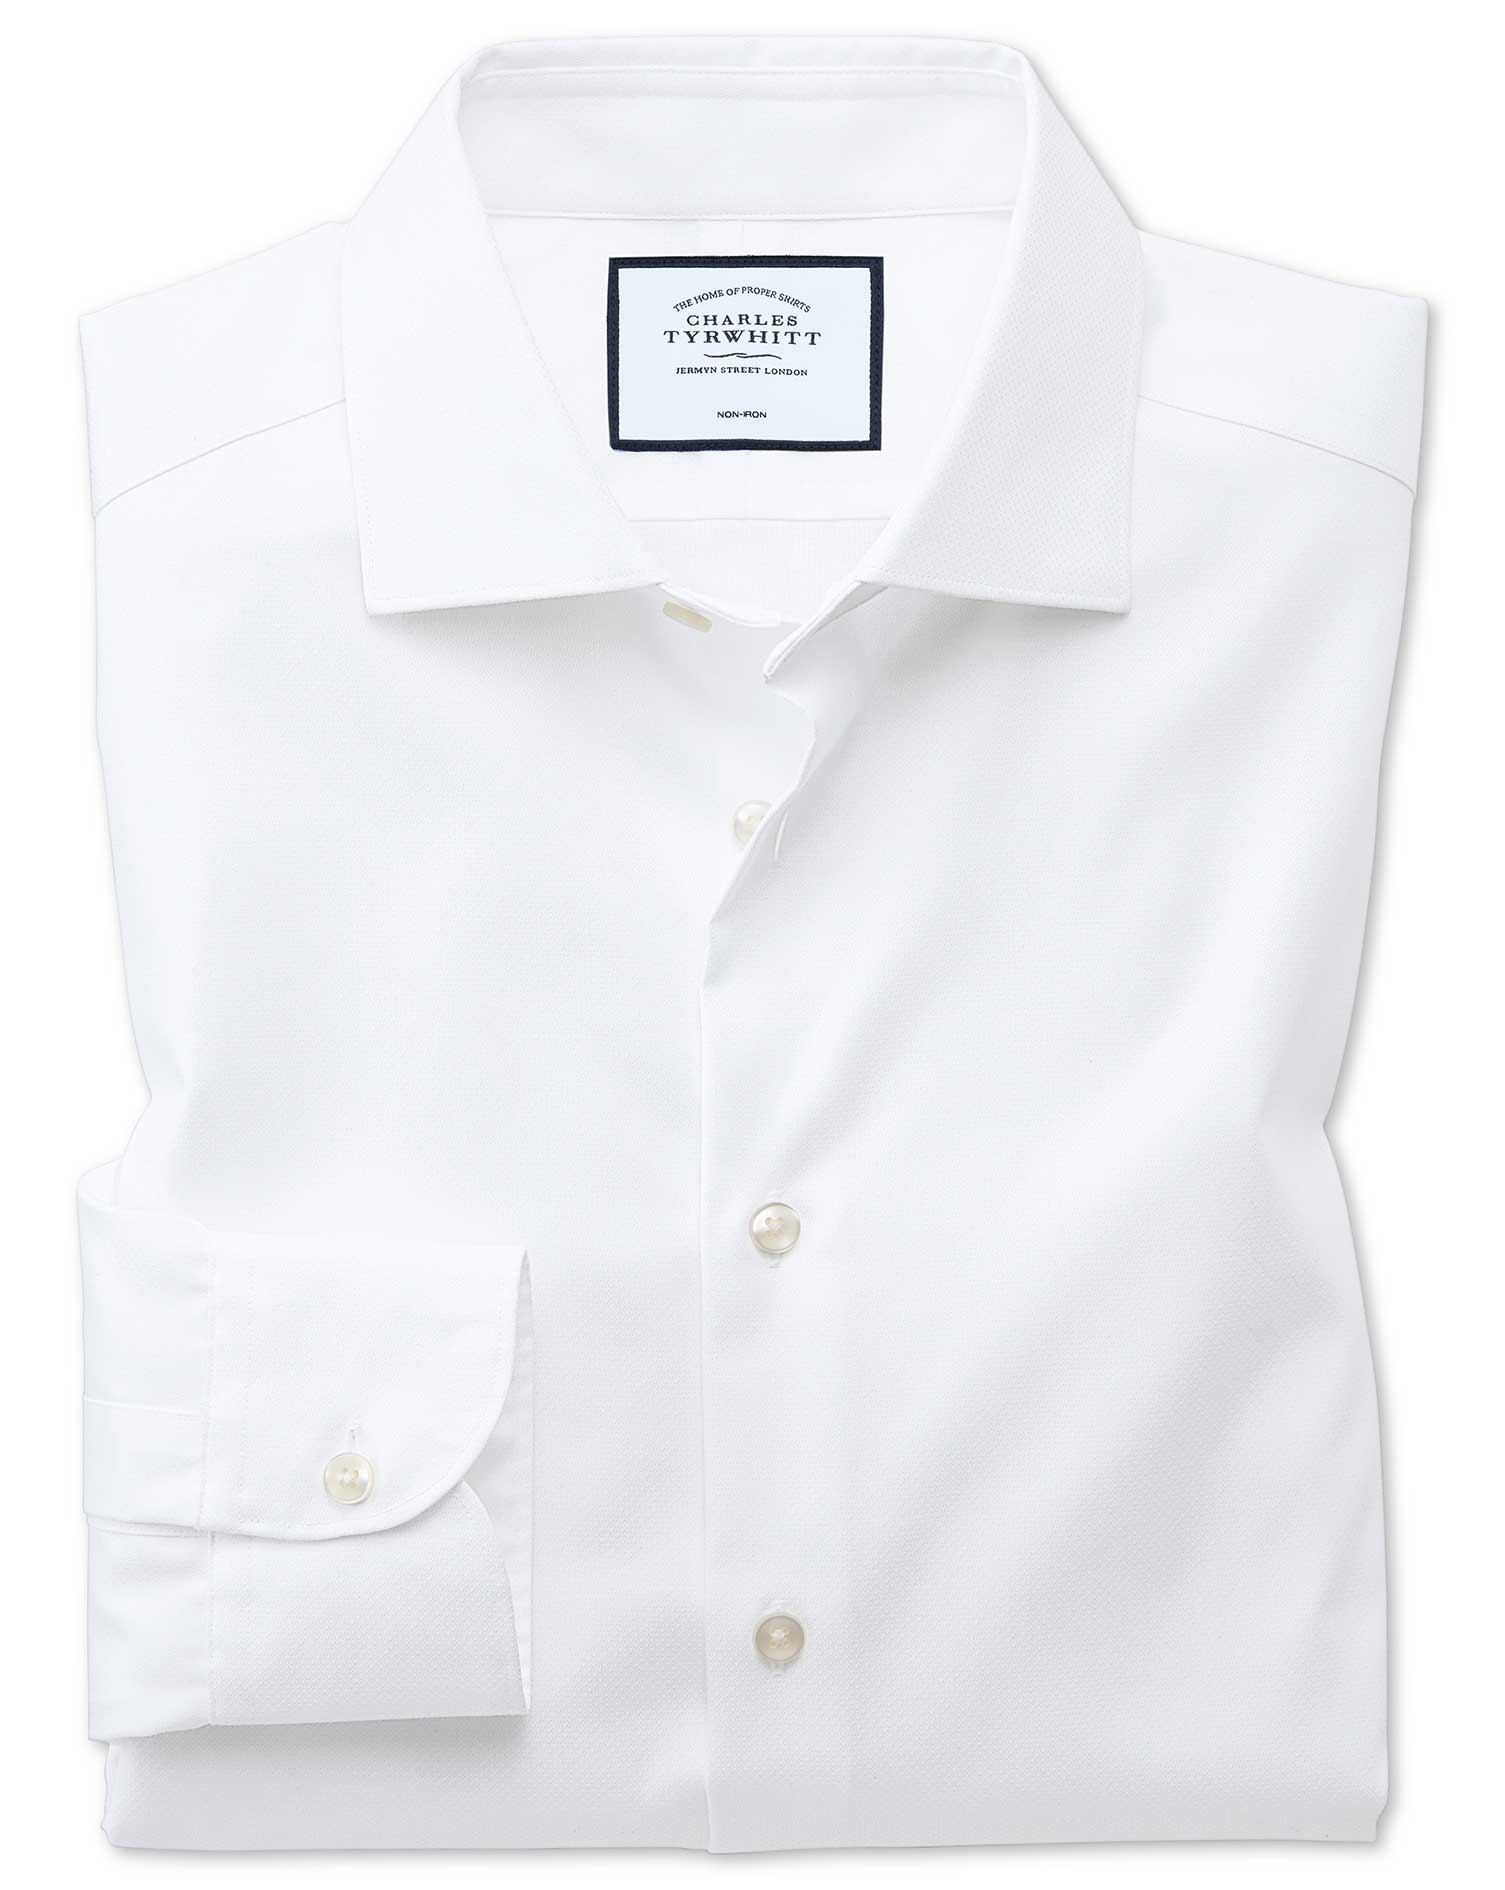 Classic Fit Business Casual Non-Iron Modern Textures White Cotton Formal Shirt Single Cuff Size 16.5